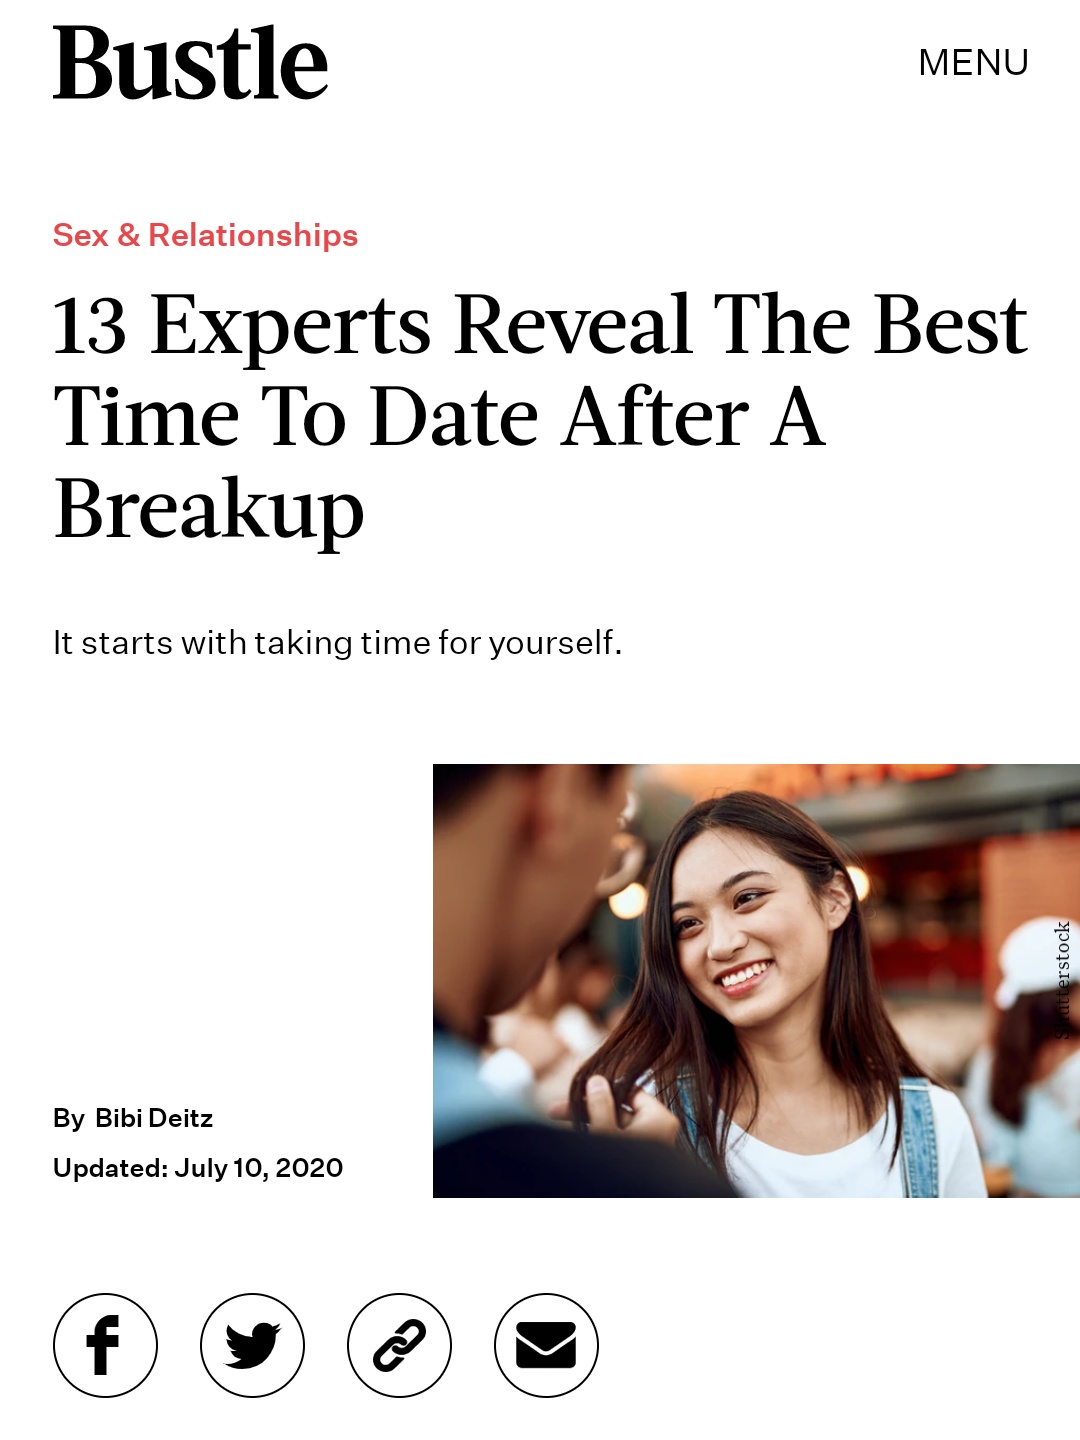 13-Experts-Reveal-Best-Time-Date-After-Breakup_Darcie-Brown-LMFT-on-Bustle